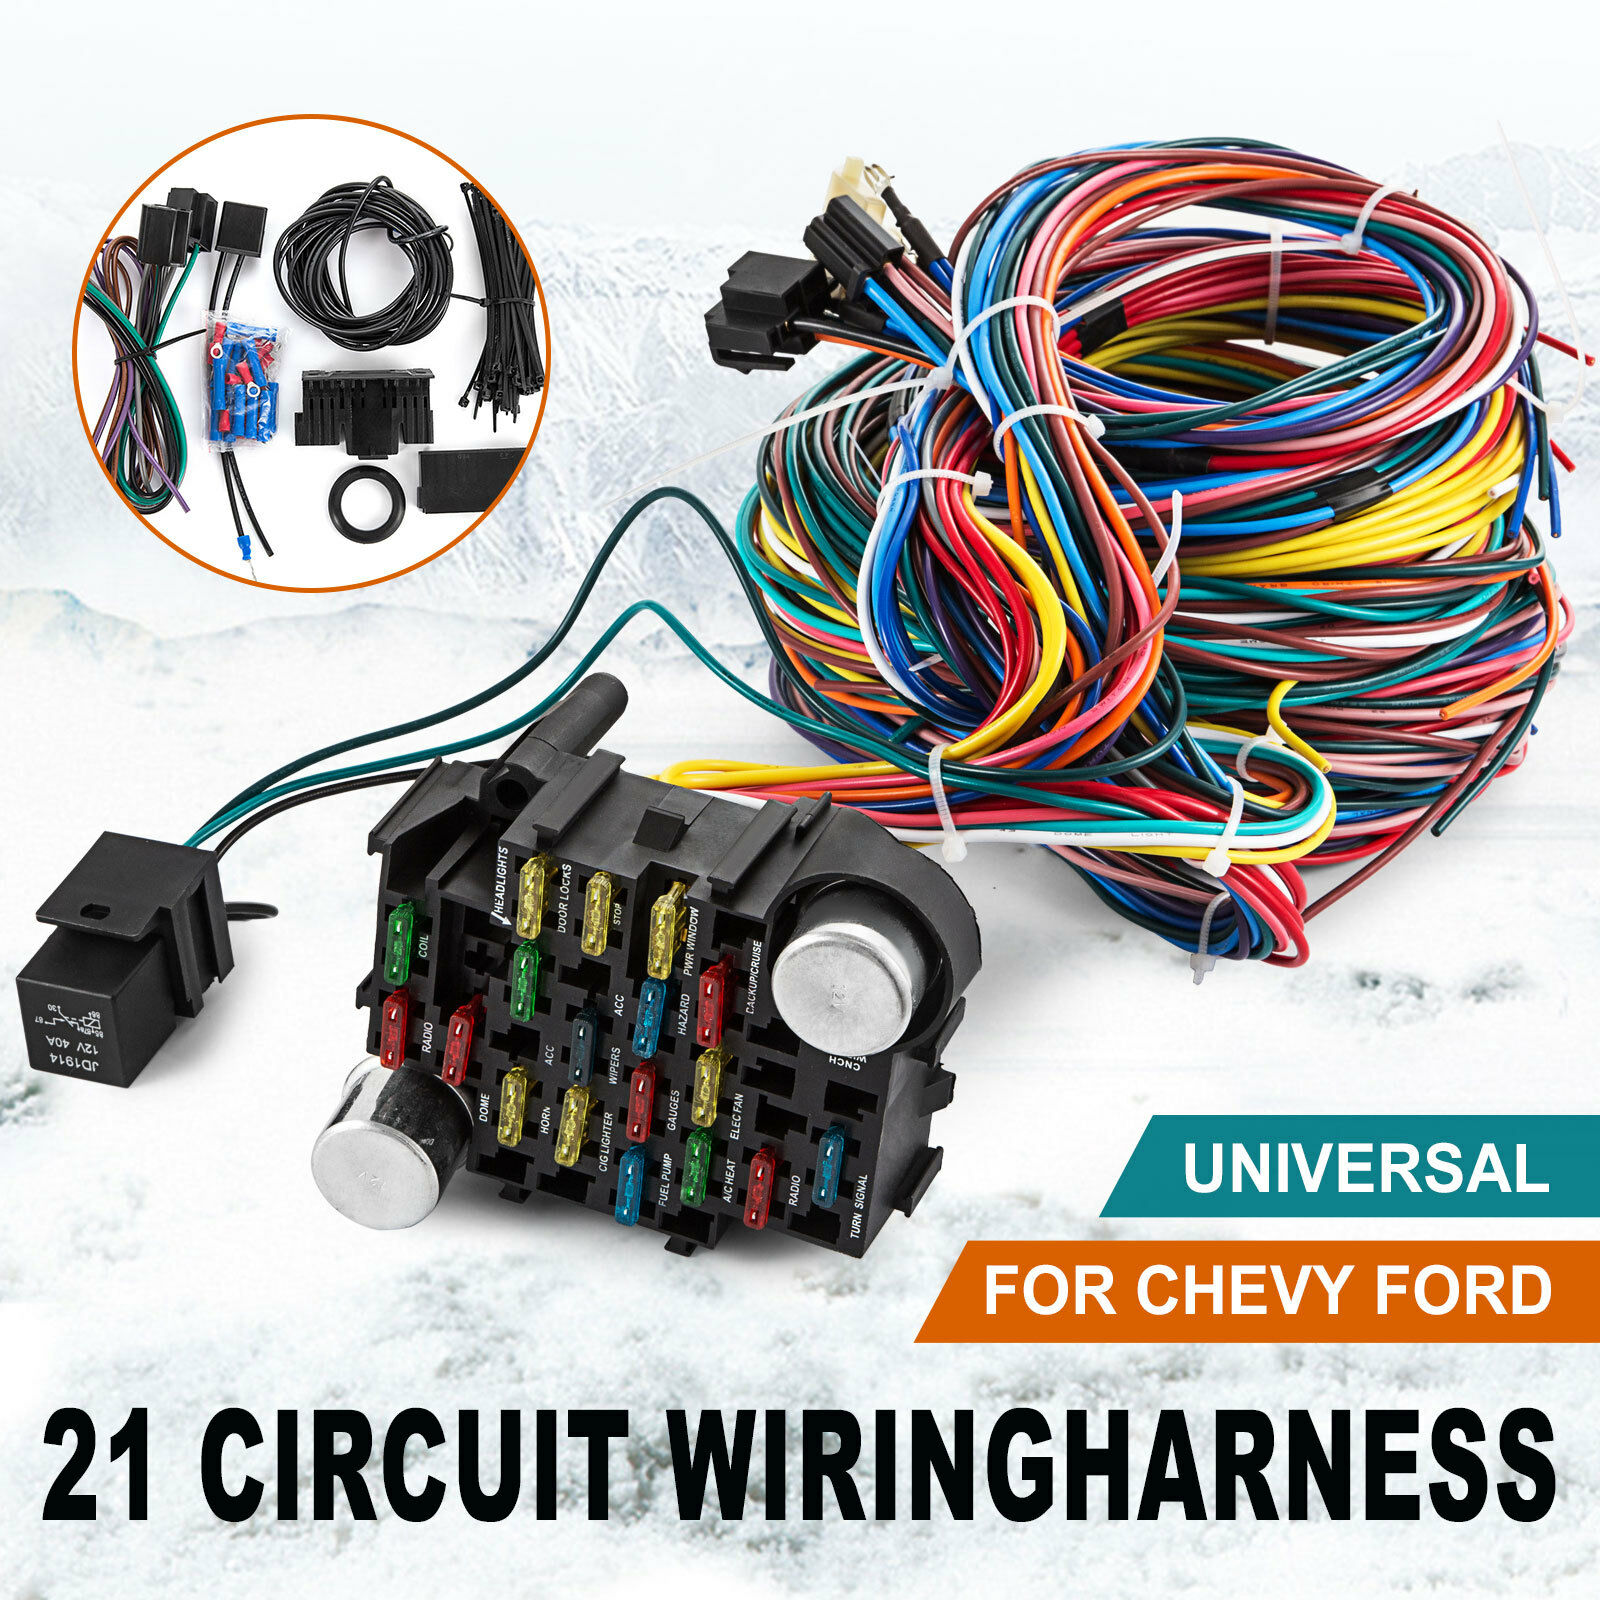 21 Circuit Wiring Harness Universal Mopar Wire For Chevy Ford Hotrods on universal tools, universal car covers, universal fuel tanks, universal electronics,